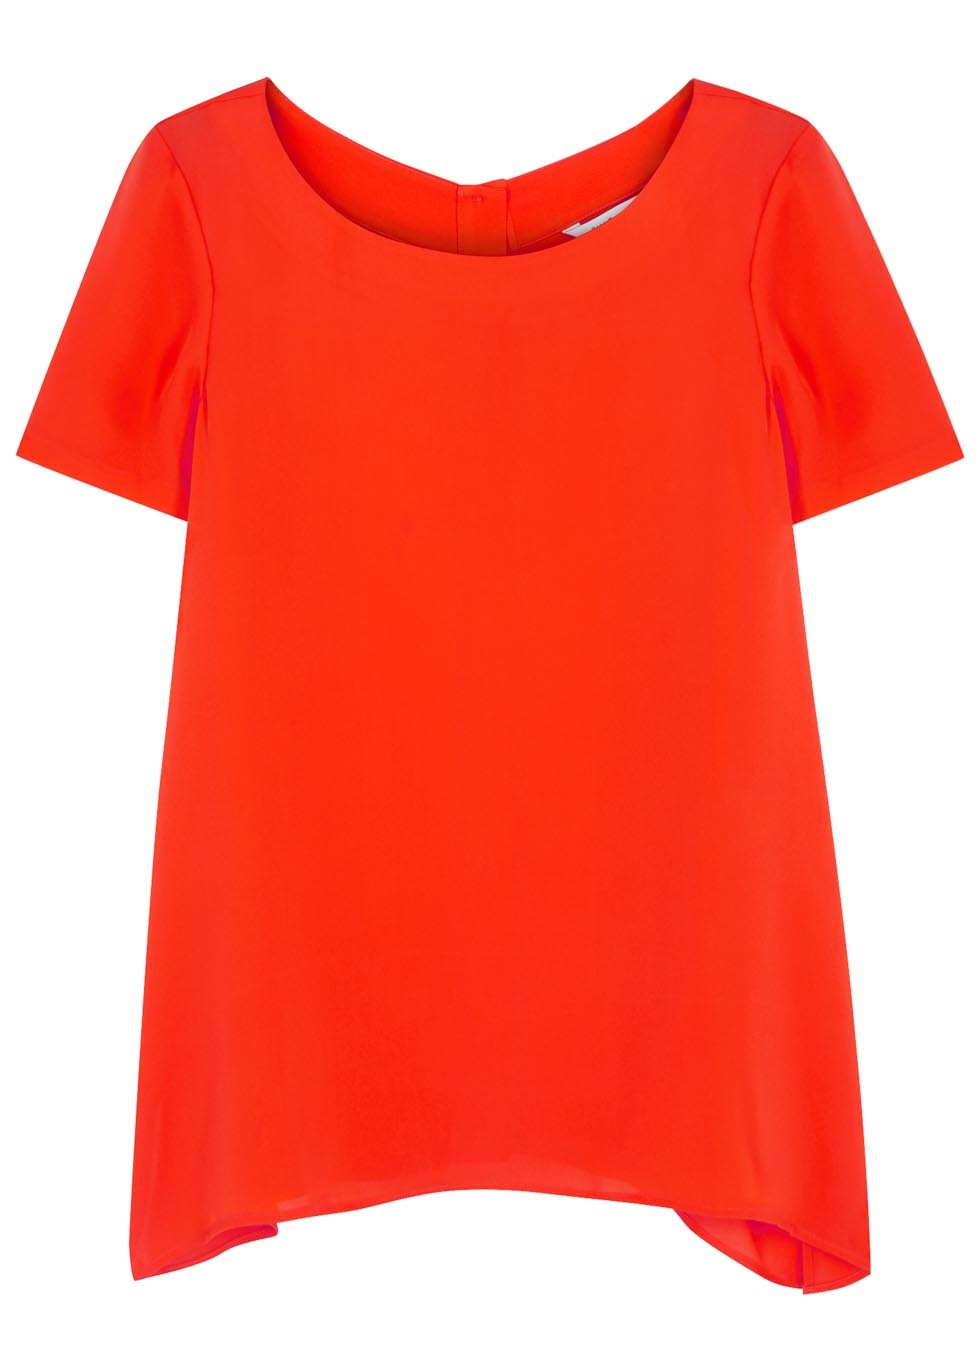 Maggy Orange Silk Top - neckline: round neck; pattern: plain; style: t-shirt; predominant colour: bright orange; occasions: casual, creative work; length: standard; fibres: silk - 100%; fit: straight cut; sleeve length: short sleeve; sleeve style: standard; texture group: crepes; pattern type: fabric; season: a/w 2016; wardrobe: highlight